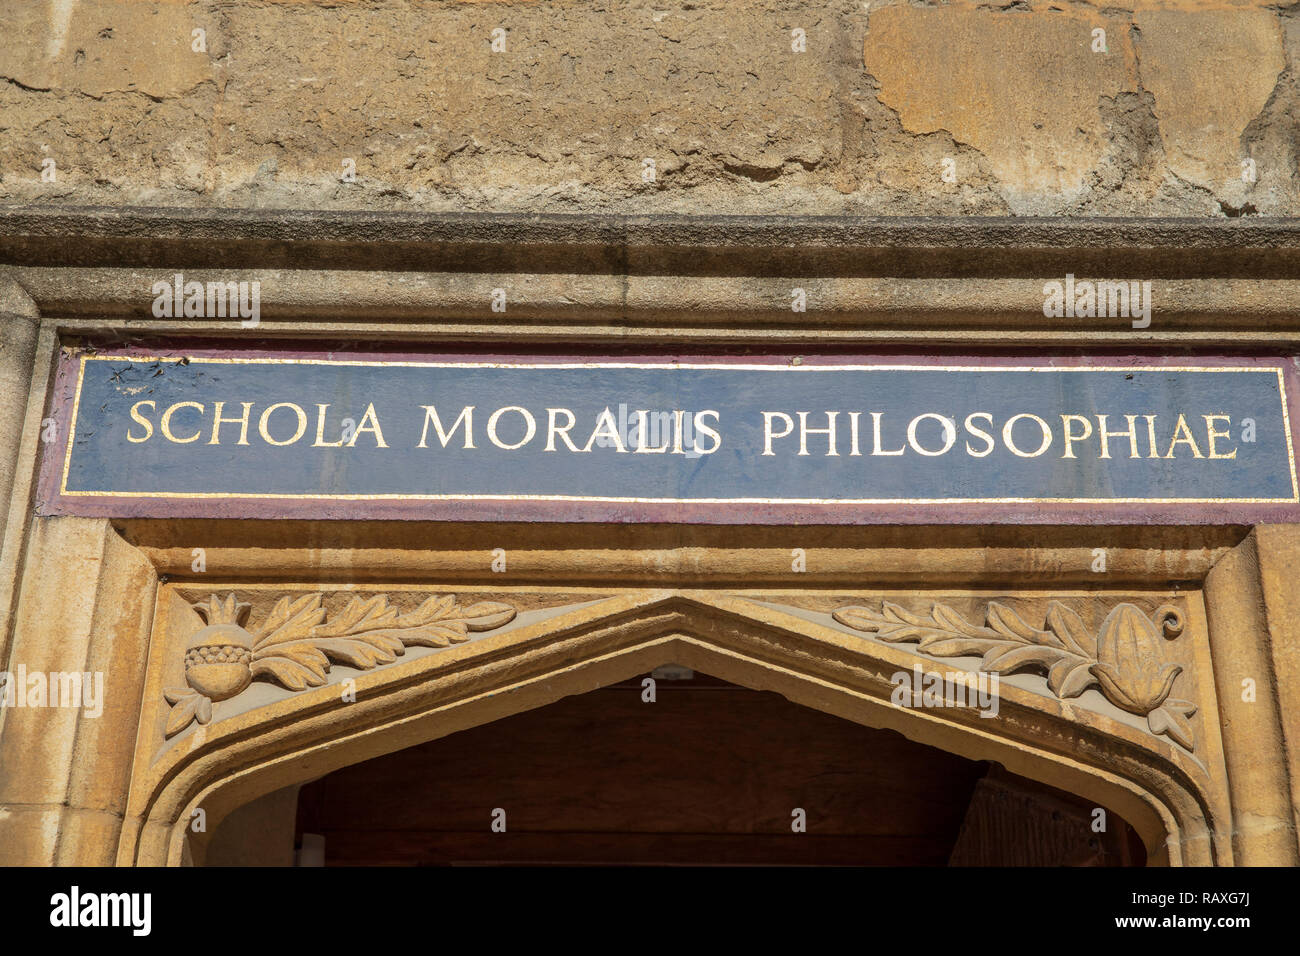 Schola Moralis Philosophiae (School of Moral Philosophy) inside the Bodleian Library in Oxford, England. - Stock Image